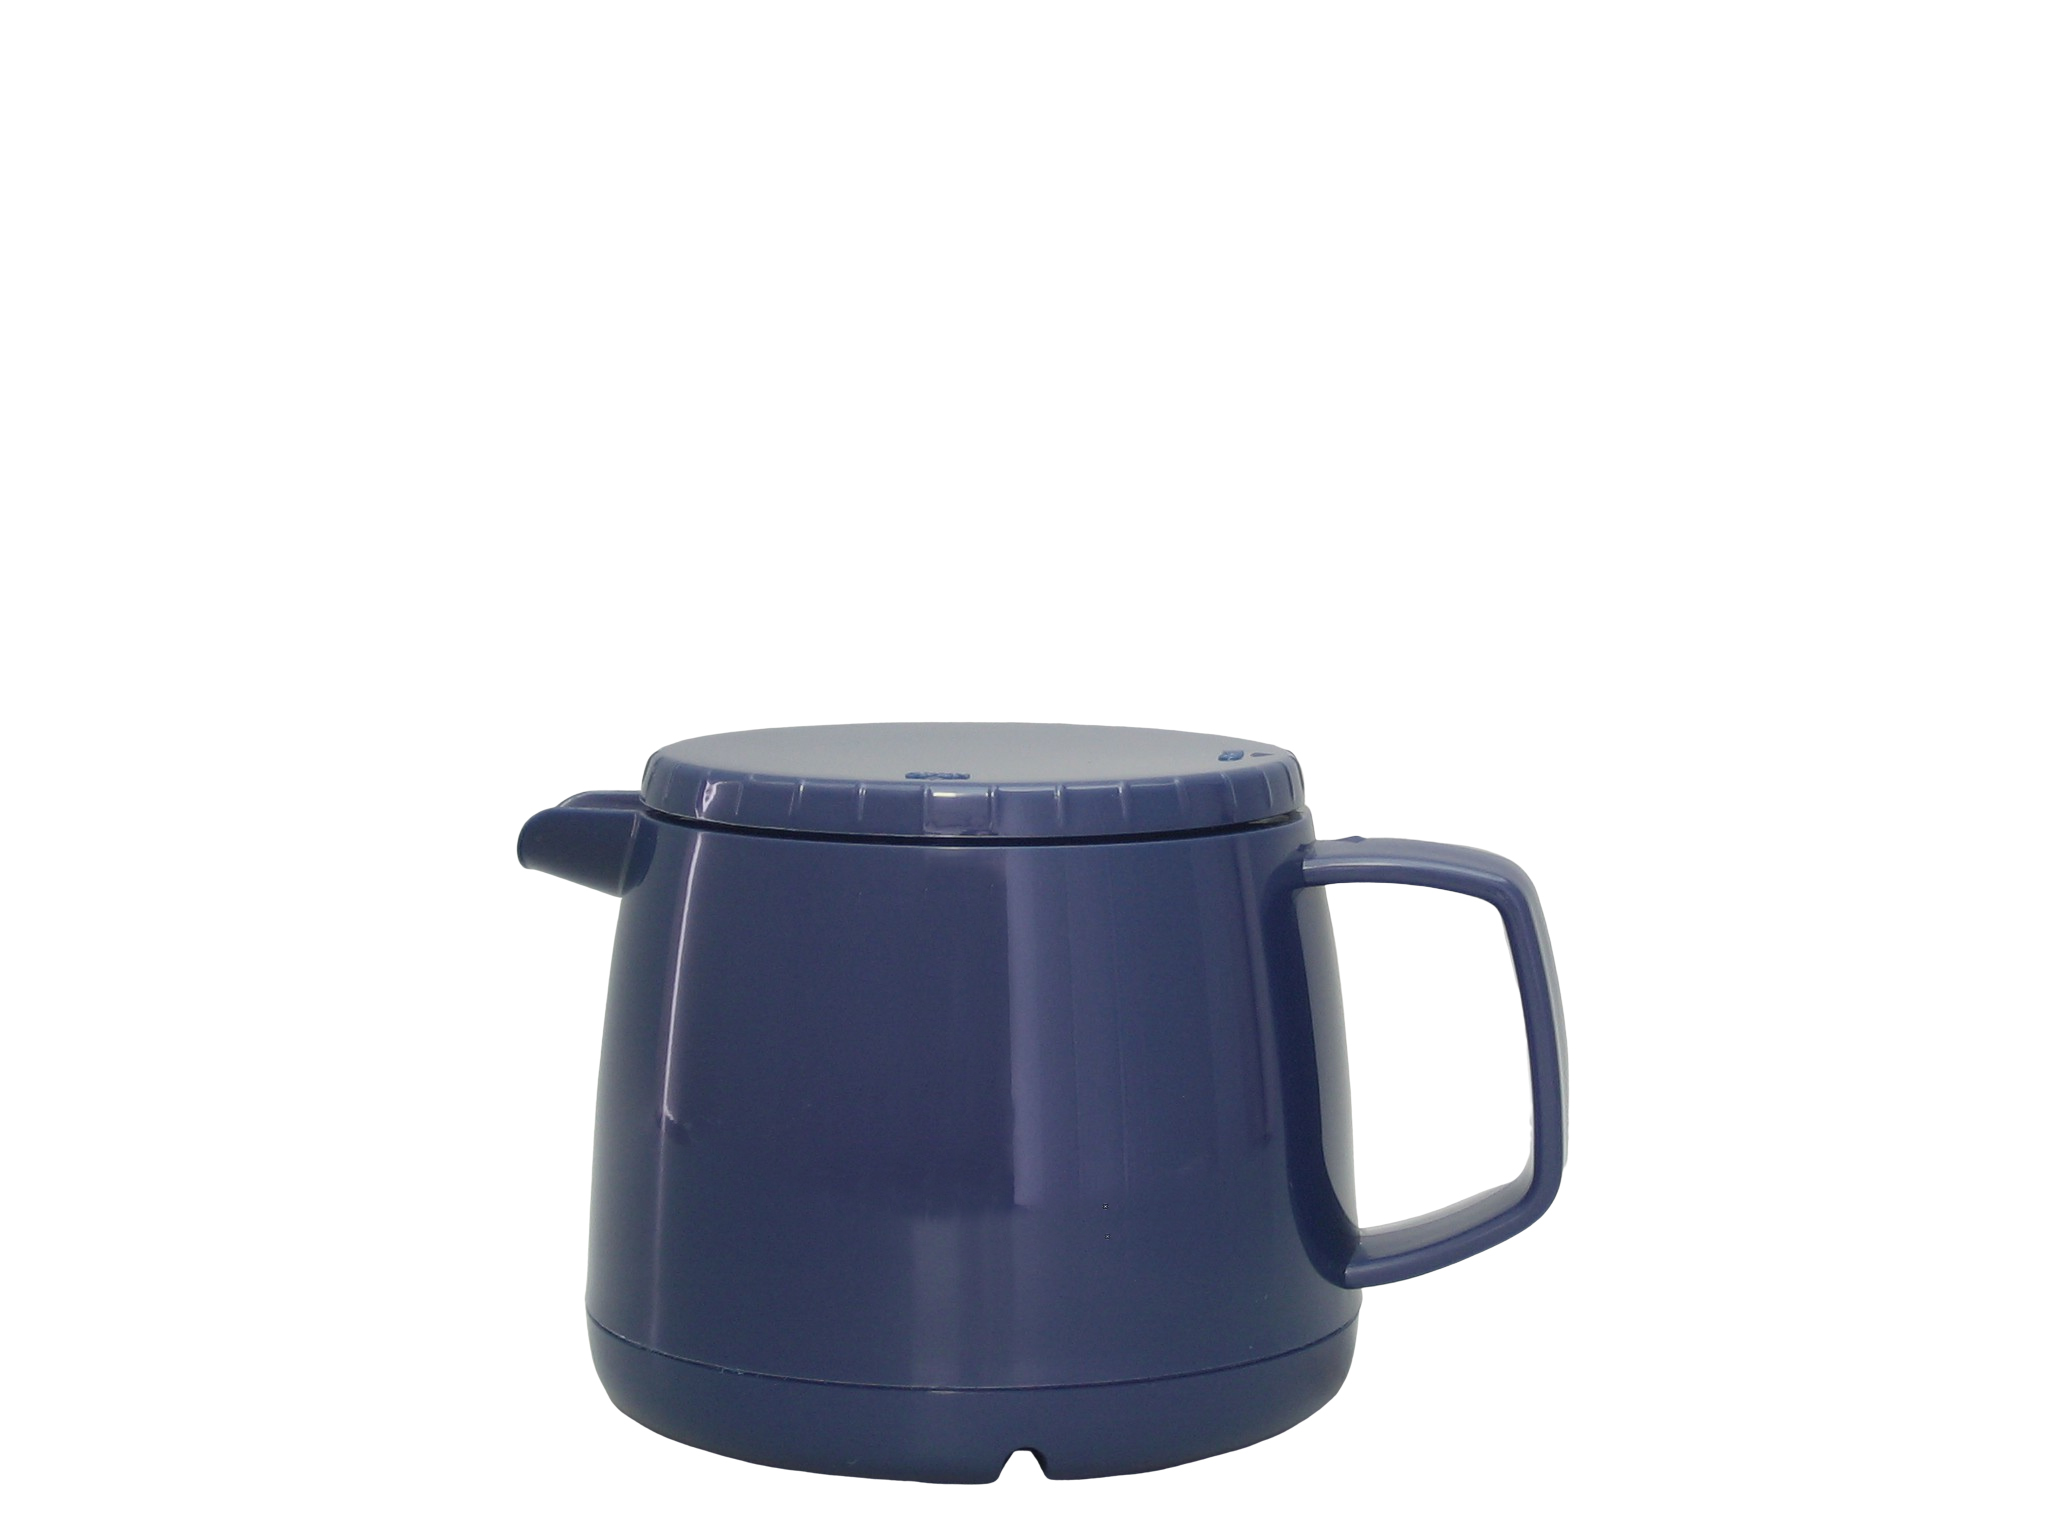 JAZZ030S-008 - Insulated carafe low height SS blue 0.30 L - Isobel